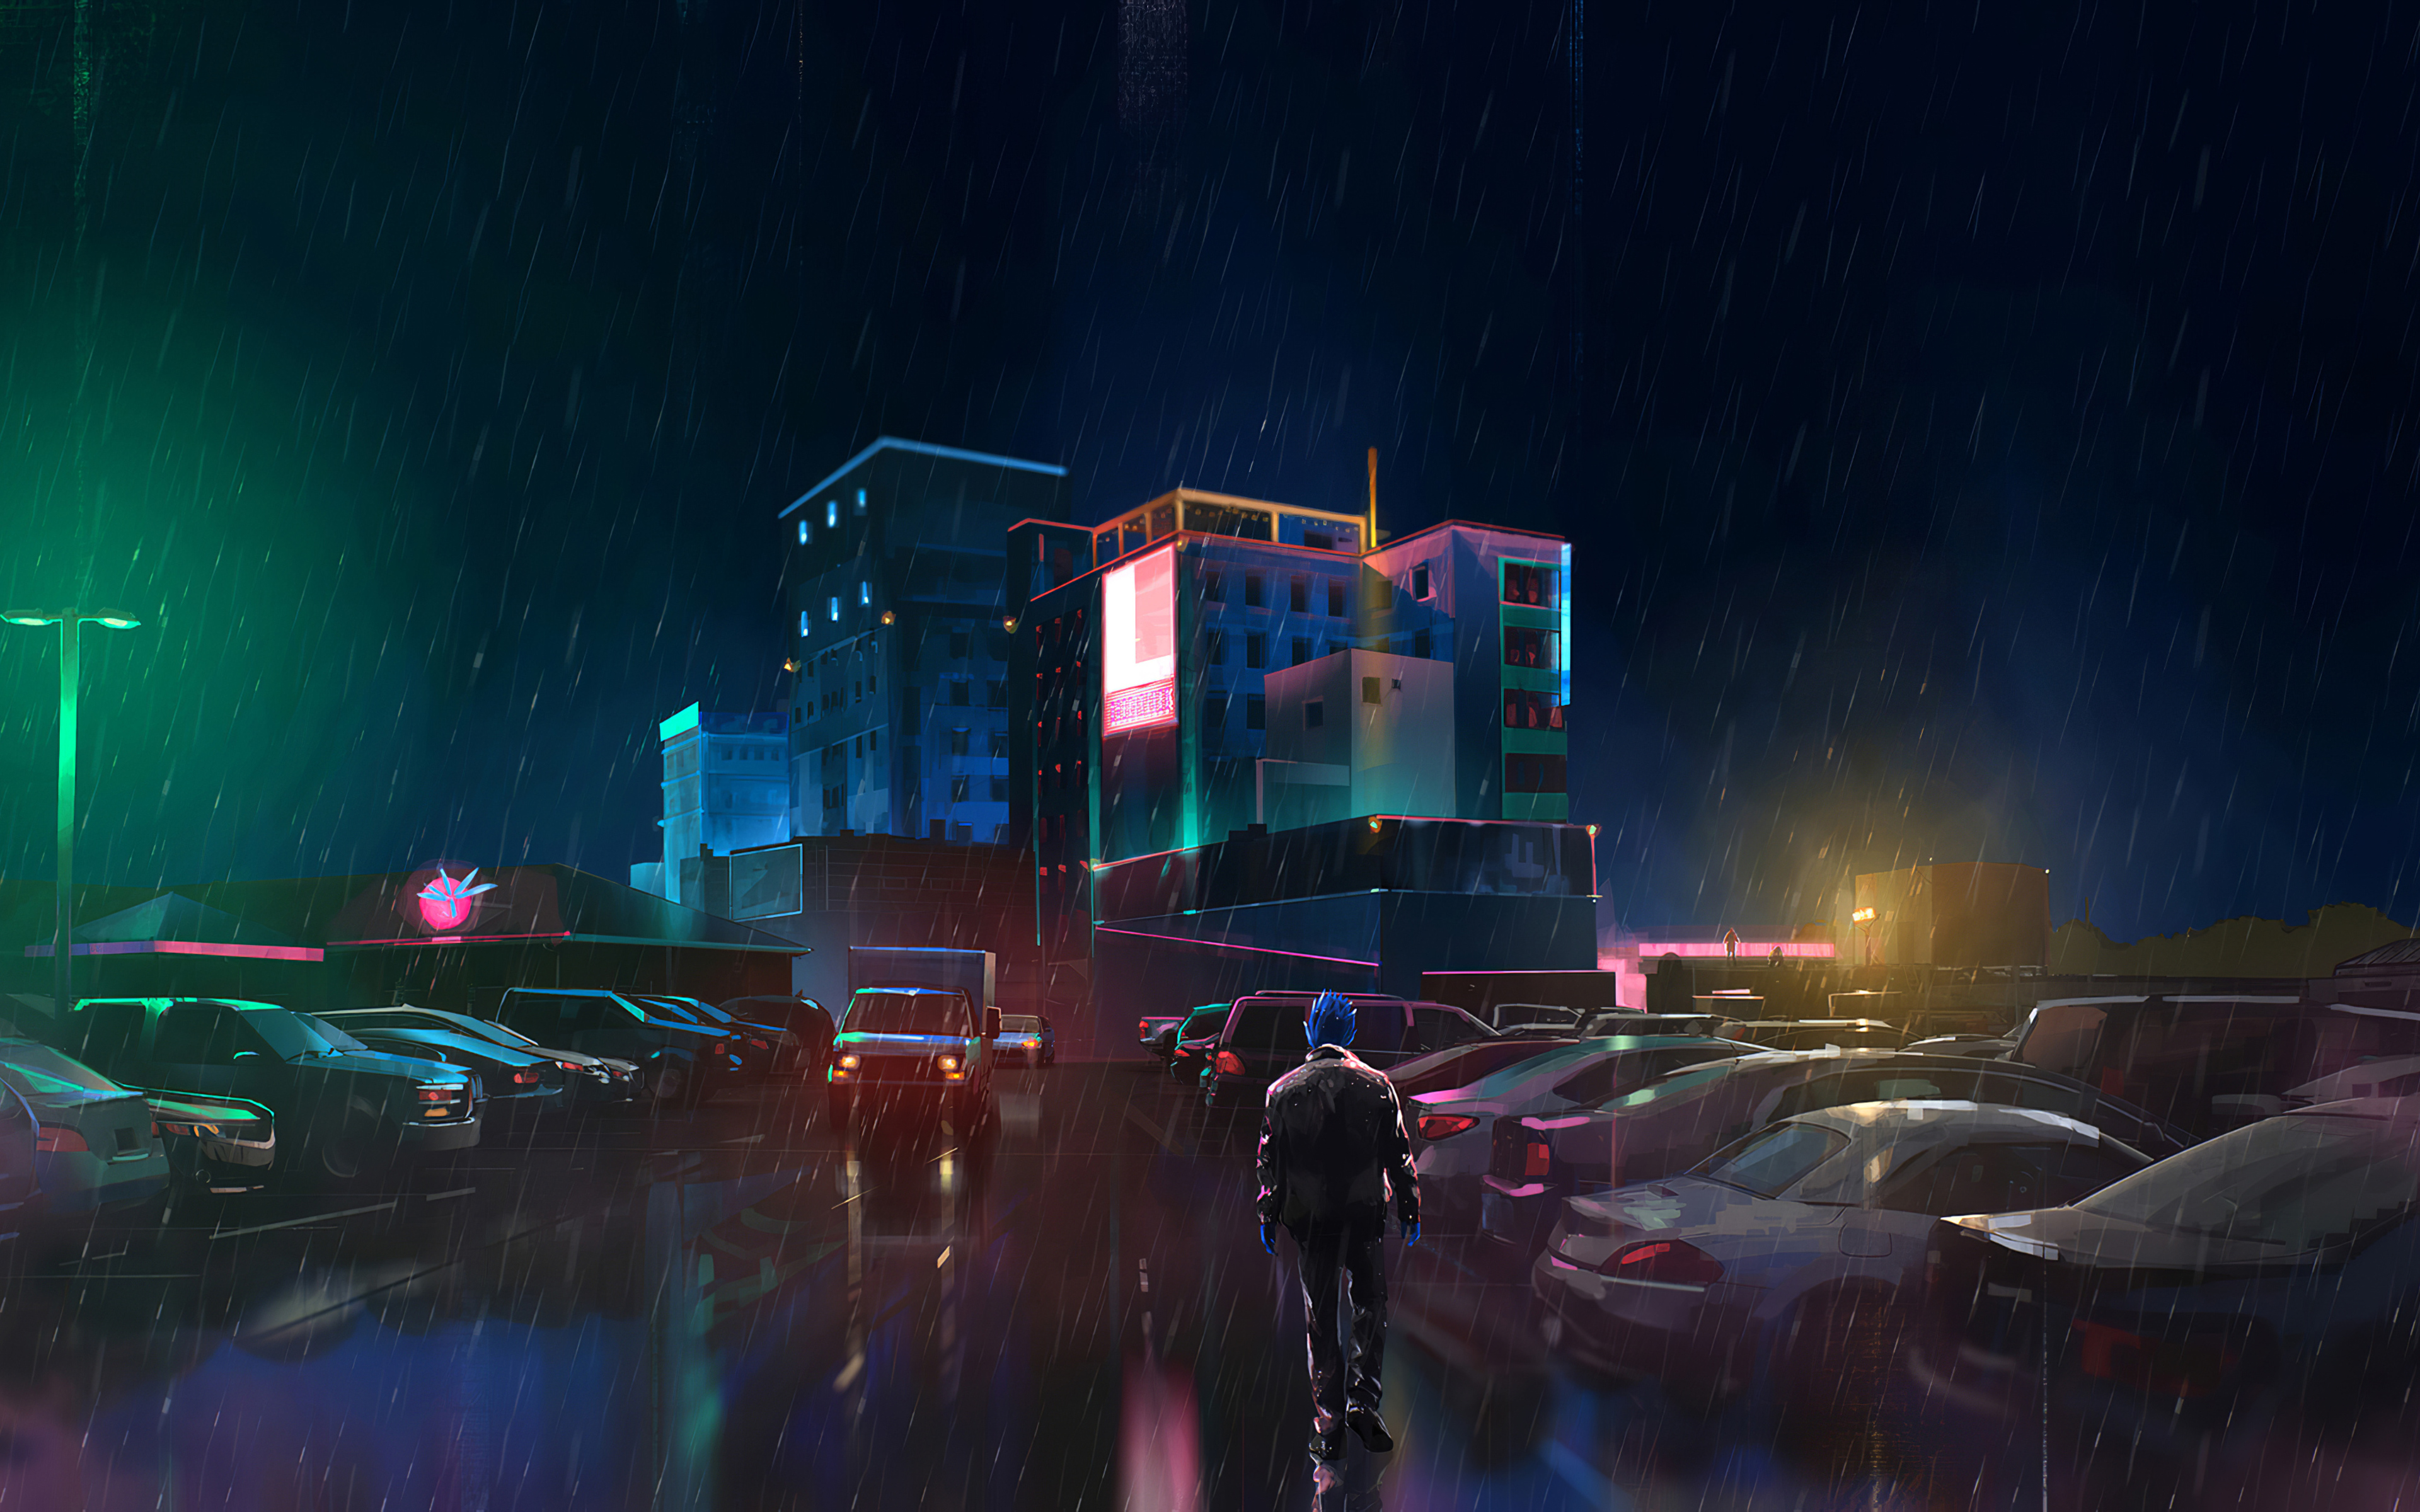 neon-man-walking-in-rain-4k-y1.jpg